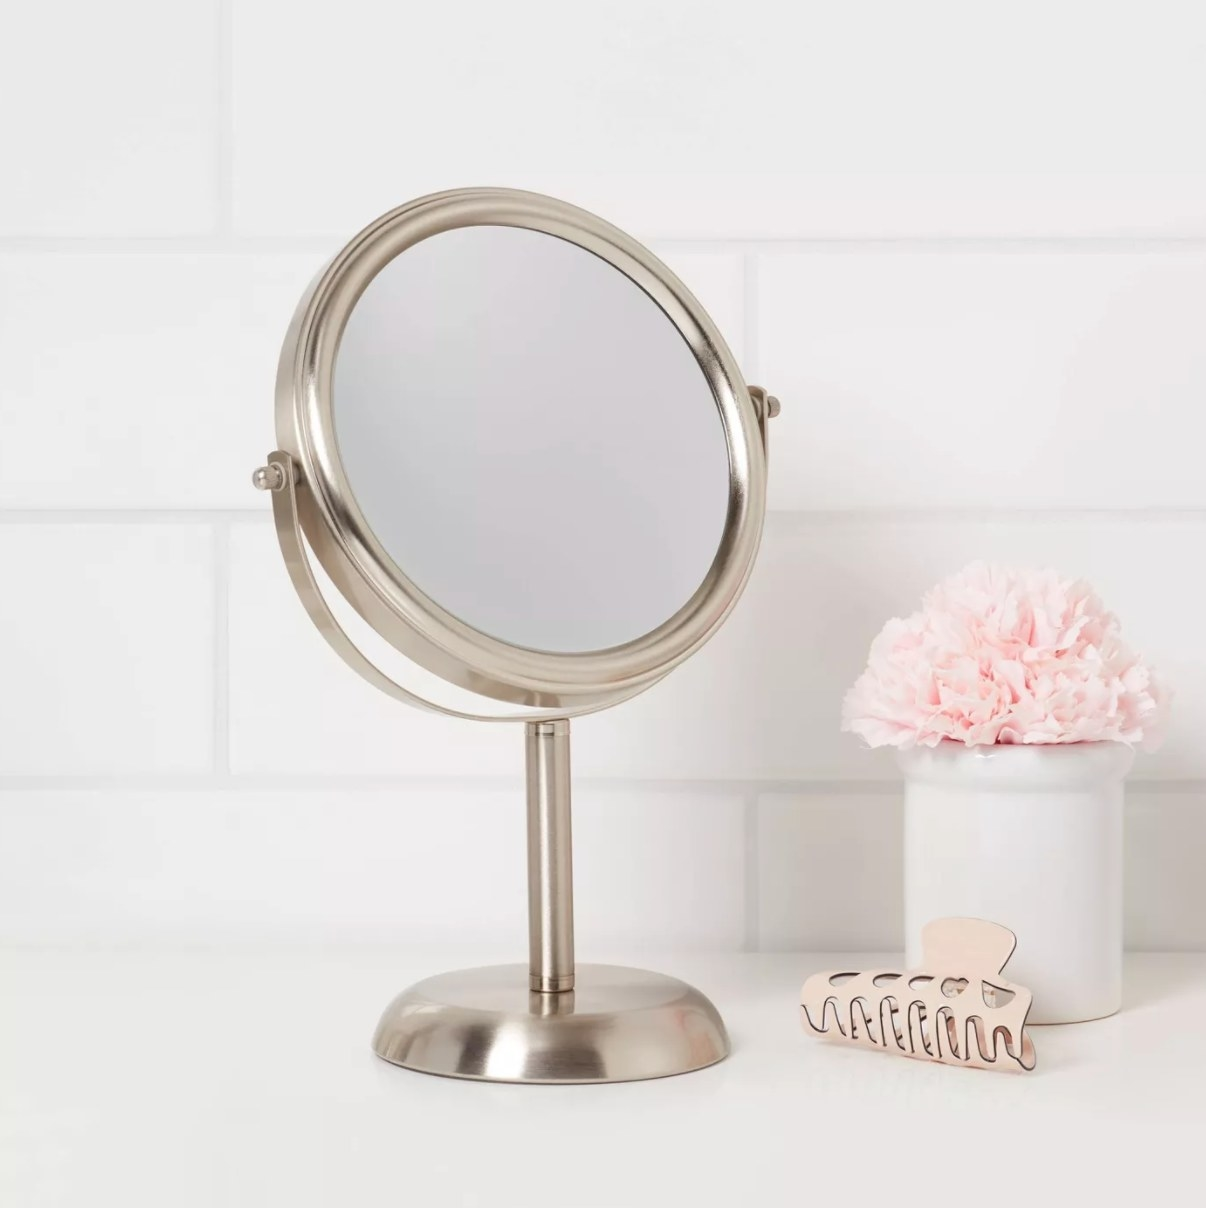 The bathroom mirror in brushed nickel